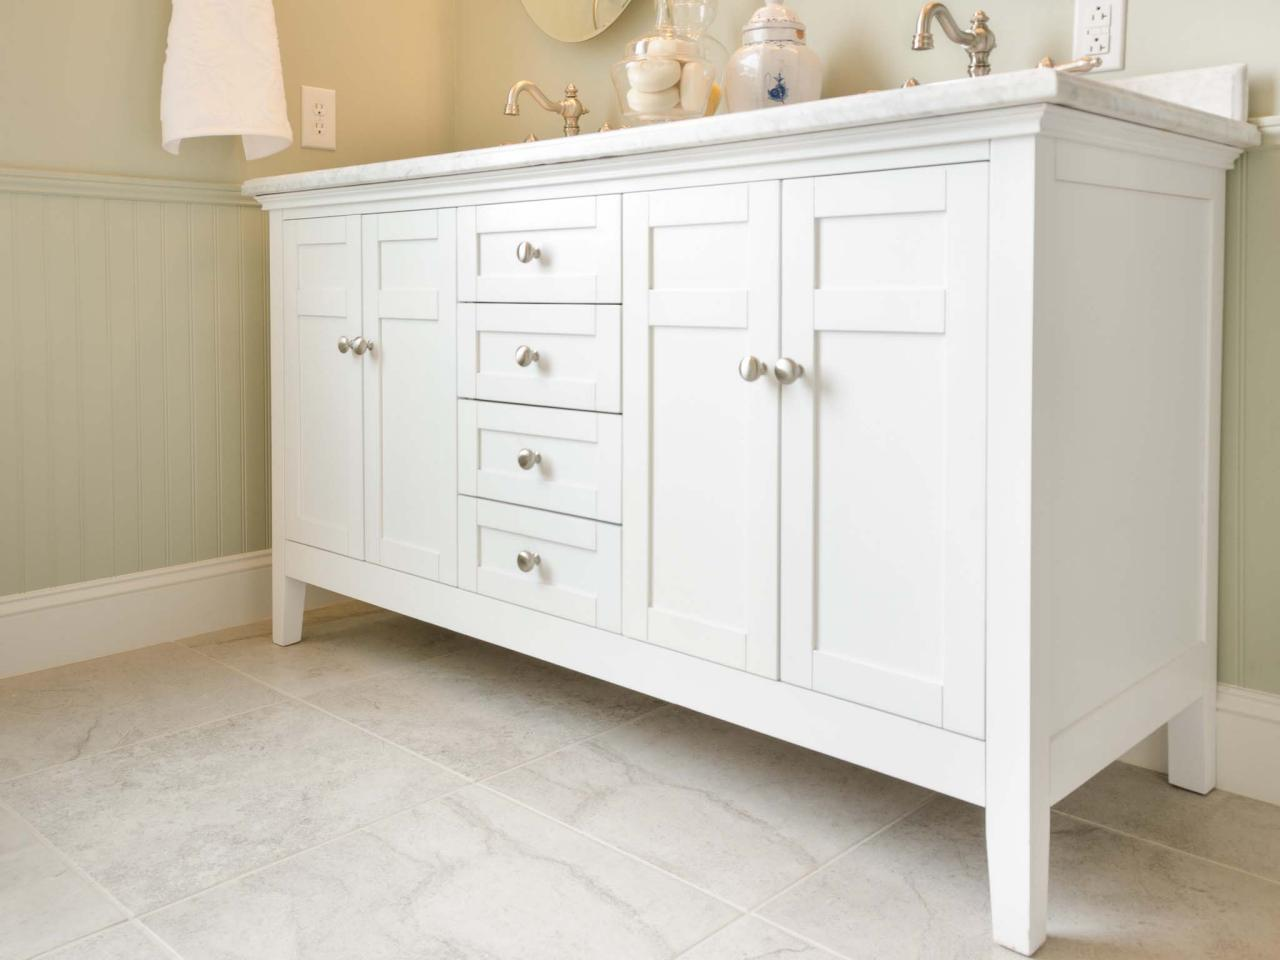 guide to selecting bathroom cabinets - Bathroom Cabinets Diy